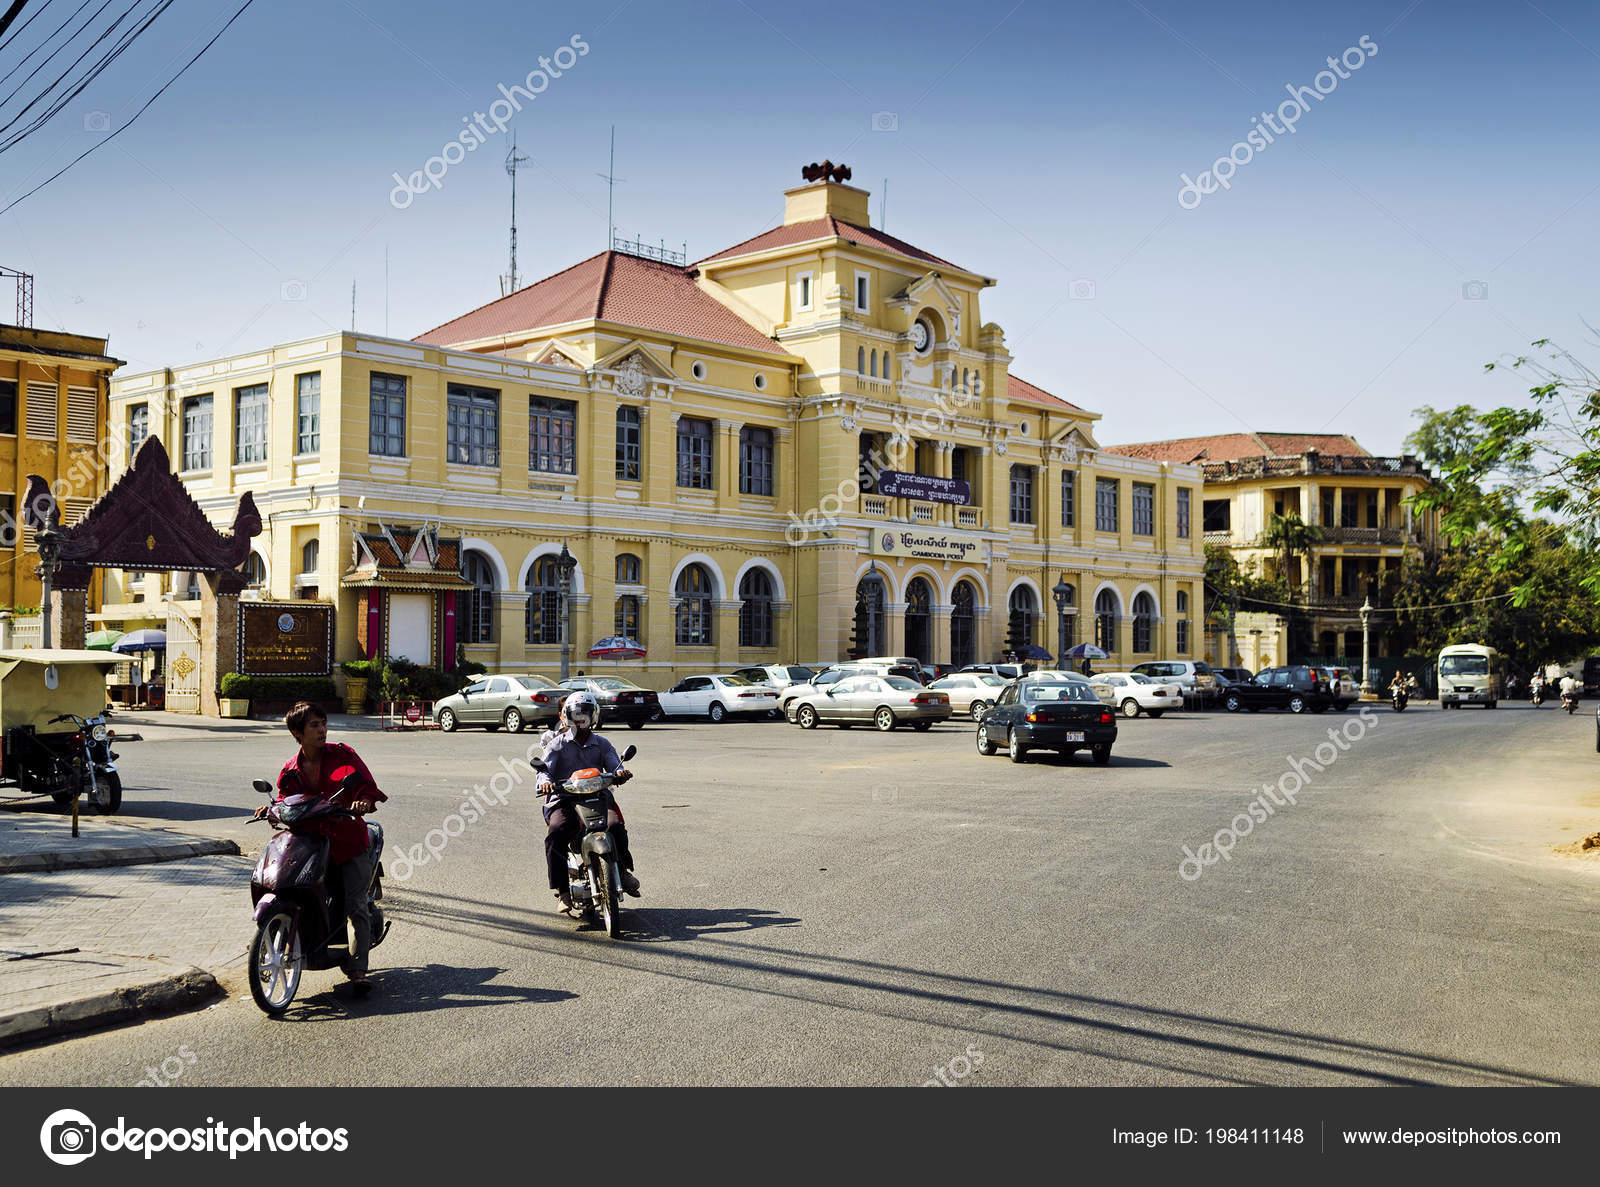 Old colonial french architecture post office central phnom penh city